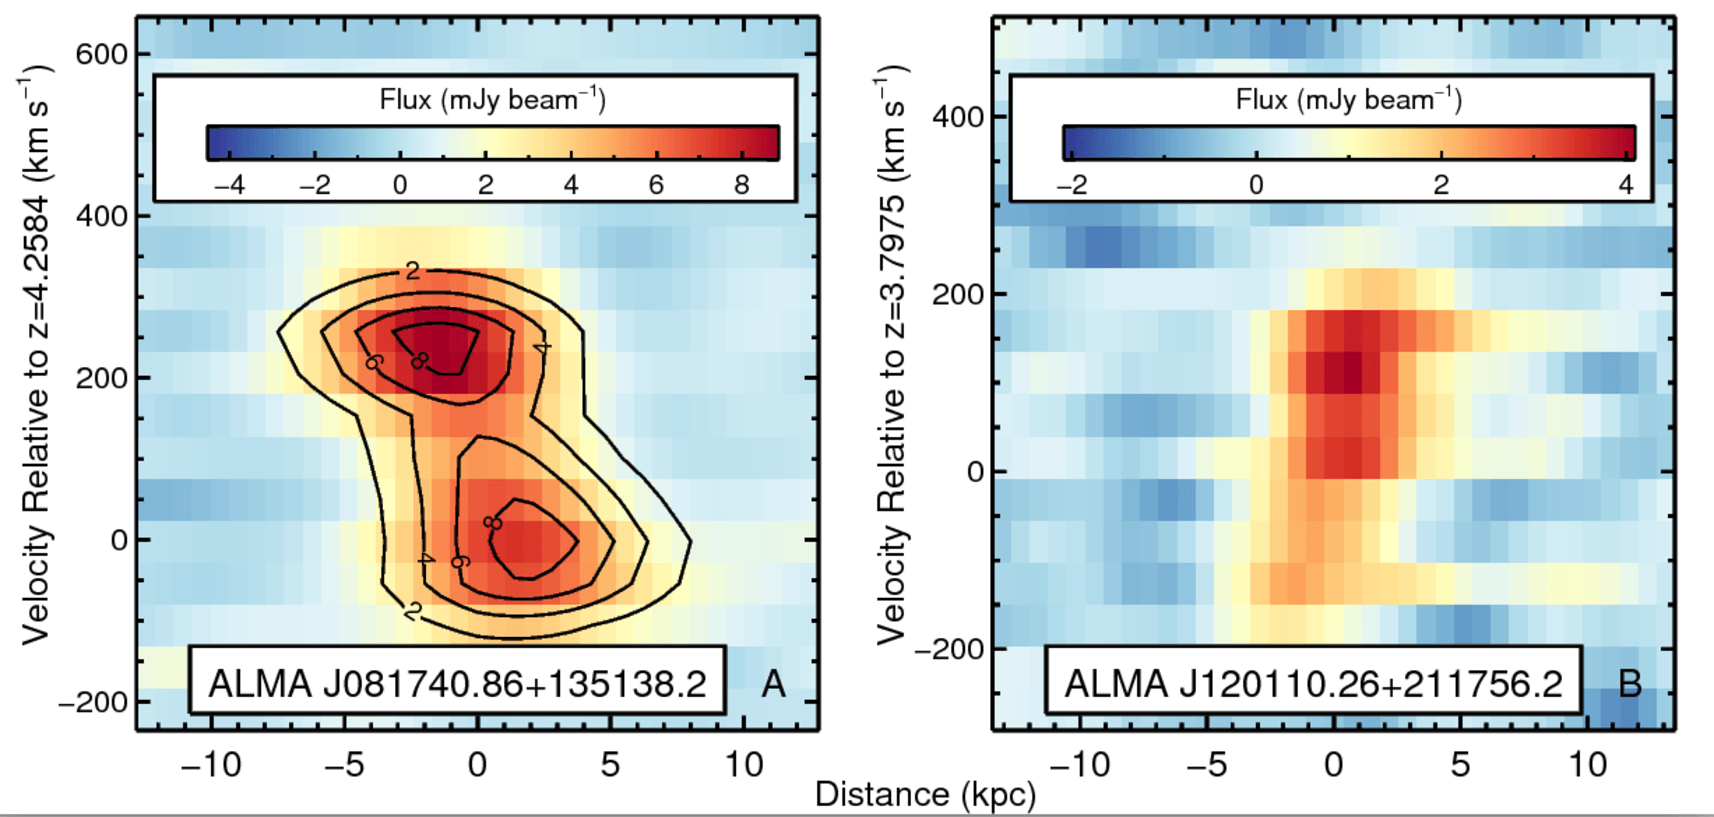 Spectral image of one galaxy's light. Horizontal axis describes the size of the galaxy and the vertical axis describes the motion of the gas. Analysis of the image reveals the gas is rotating in a disk, like our own spiral galaxy. - Image Credit: Neeleman et al doi: 10.1126/science.aal1737, CC BY-ND